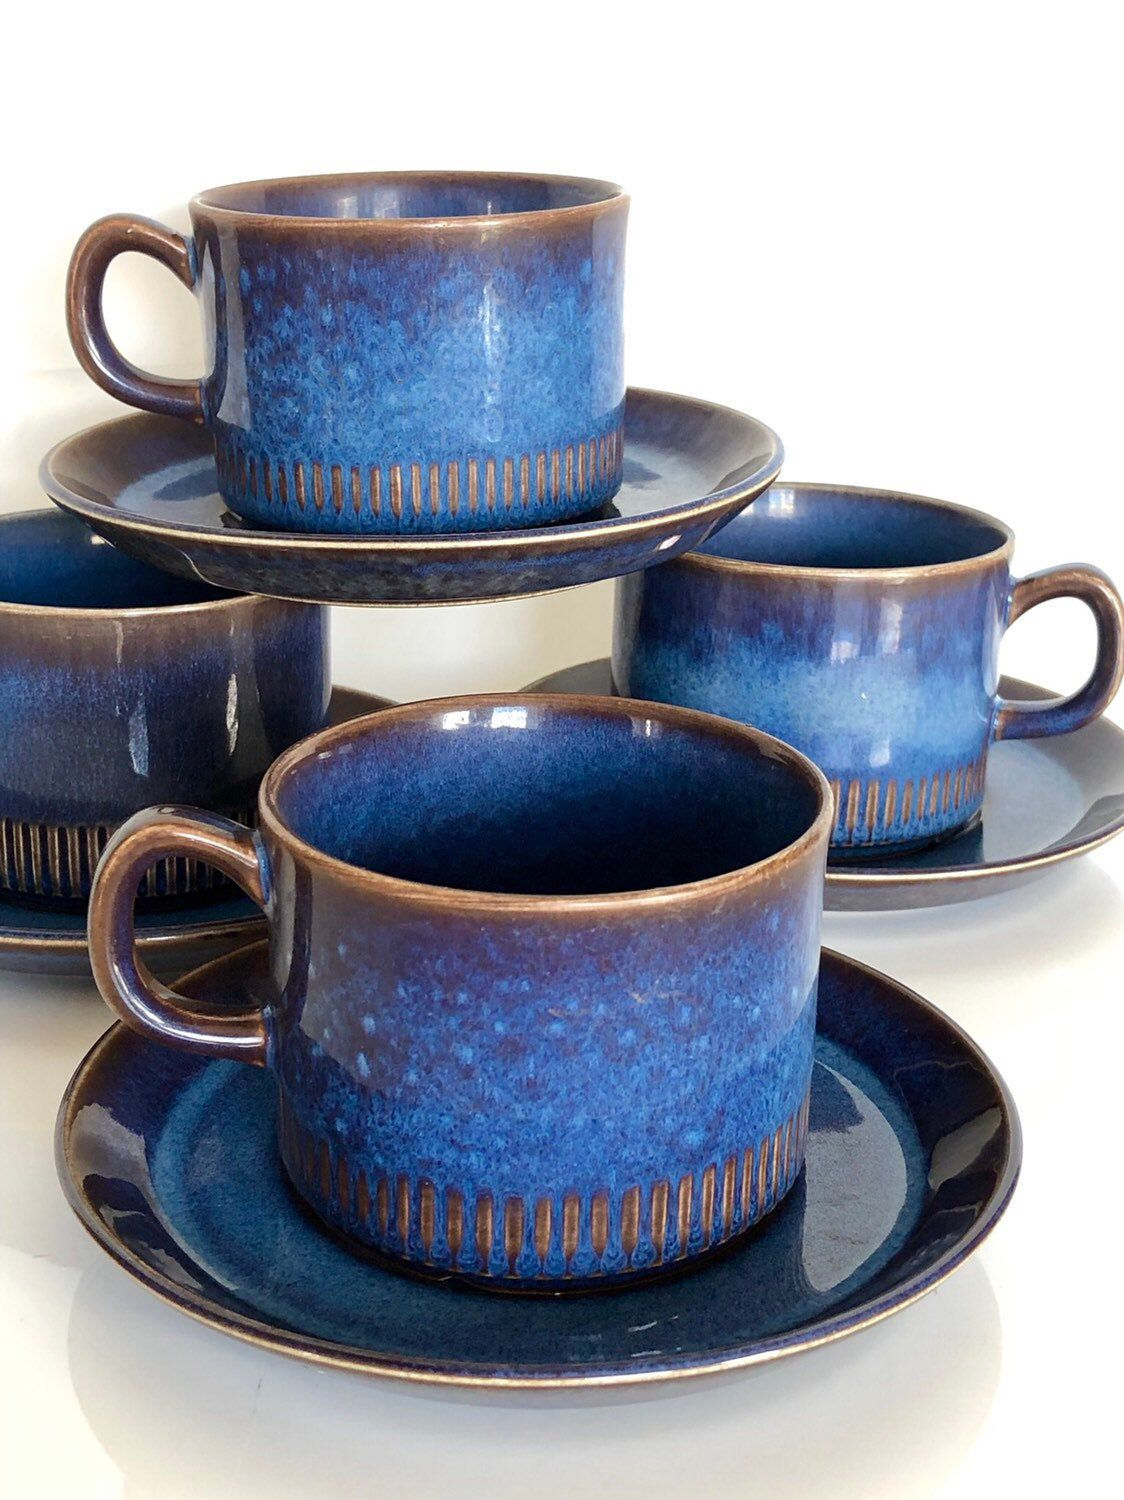 Midcentury modern Cosmos coffee cups and saucers by Berit